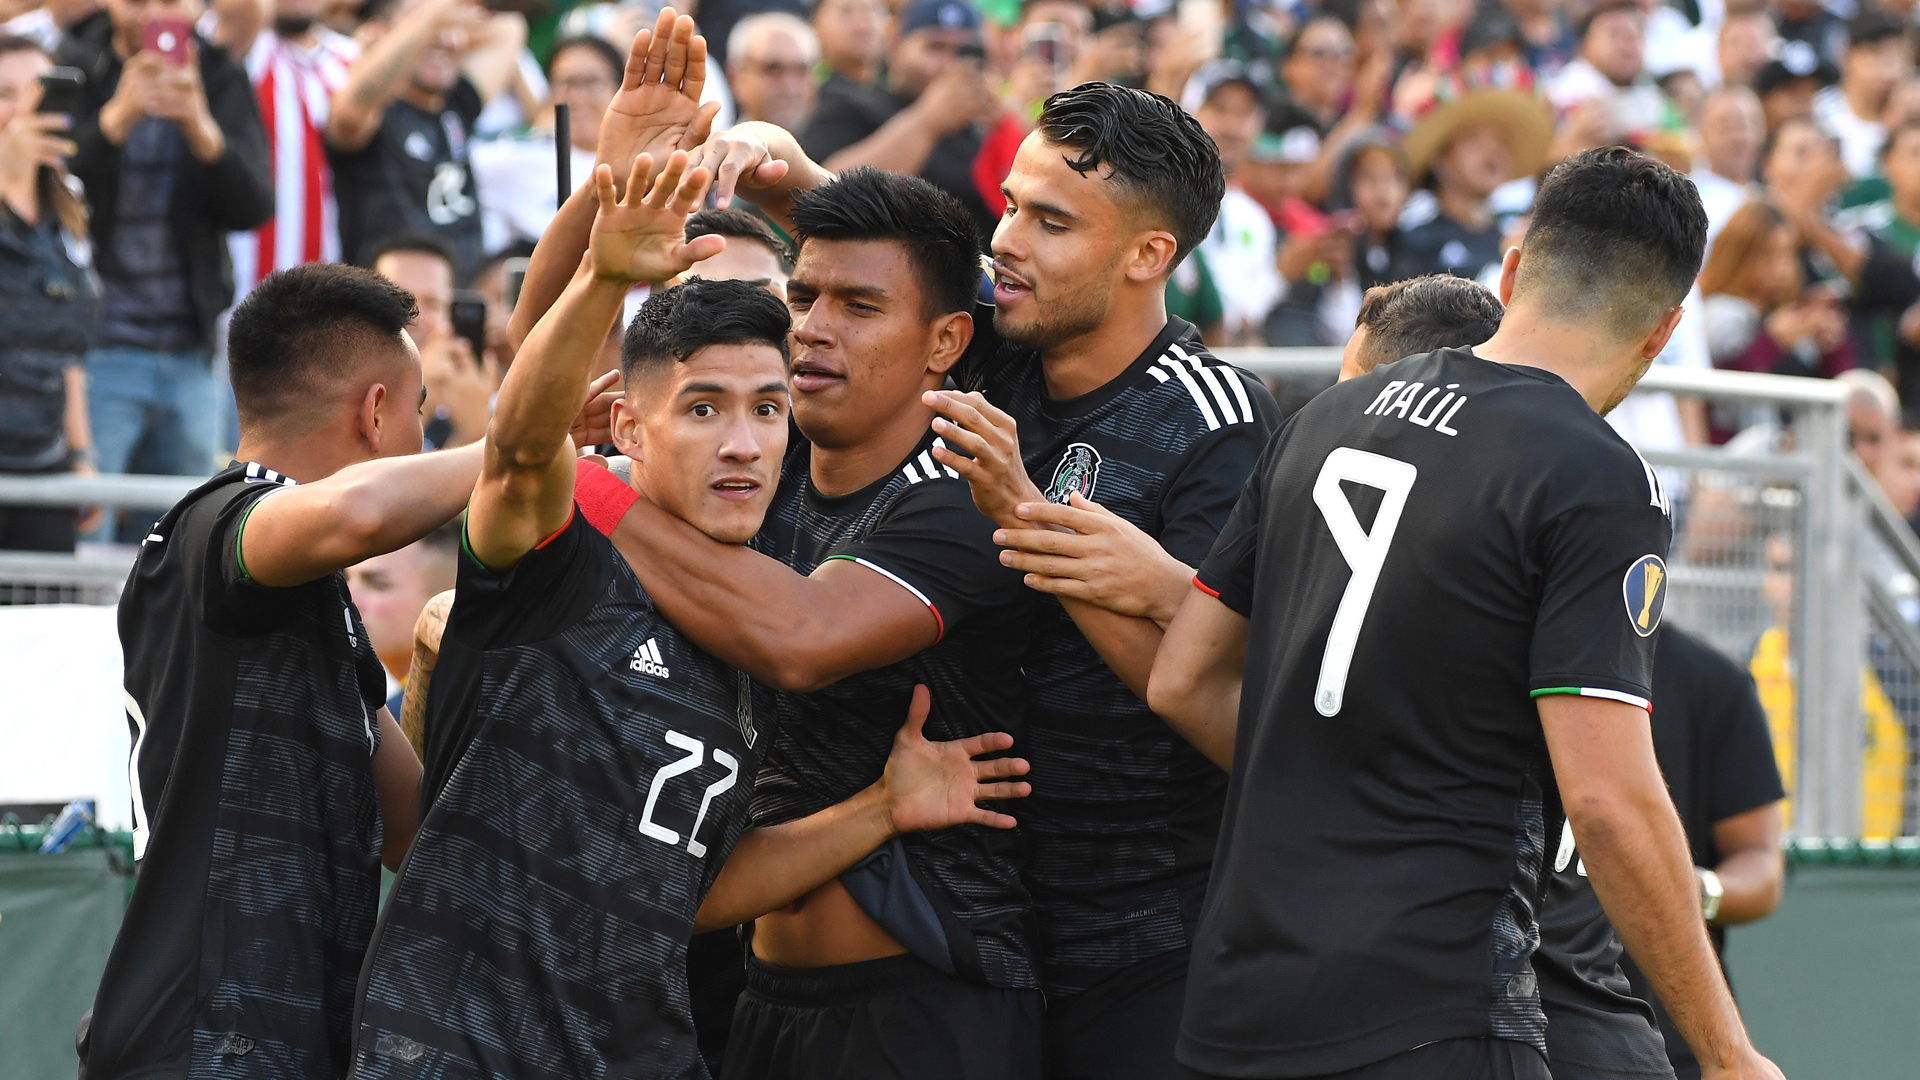 Uriel Antuna netted a hat-trick as Mexico comprehensively beat Cuba at the CONCACAF Gold Cup.